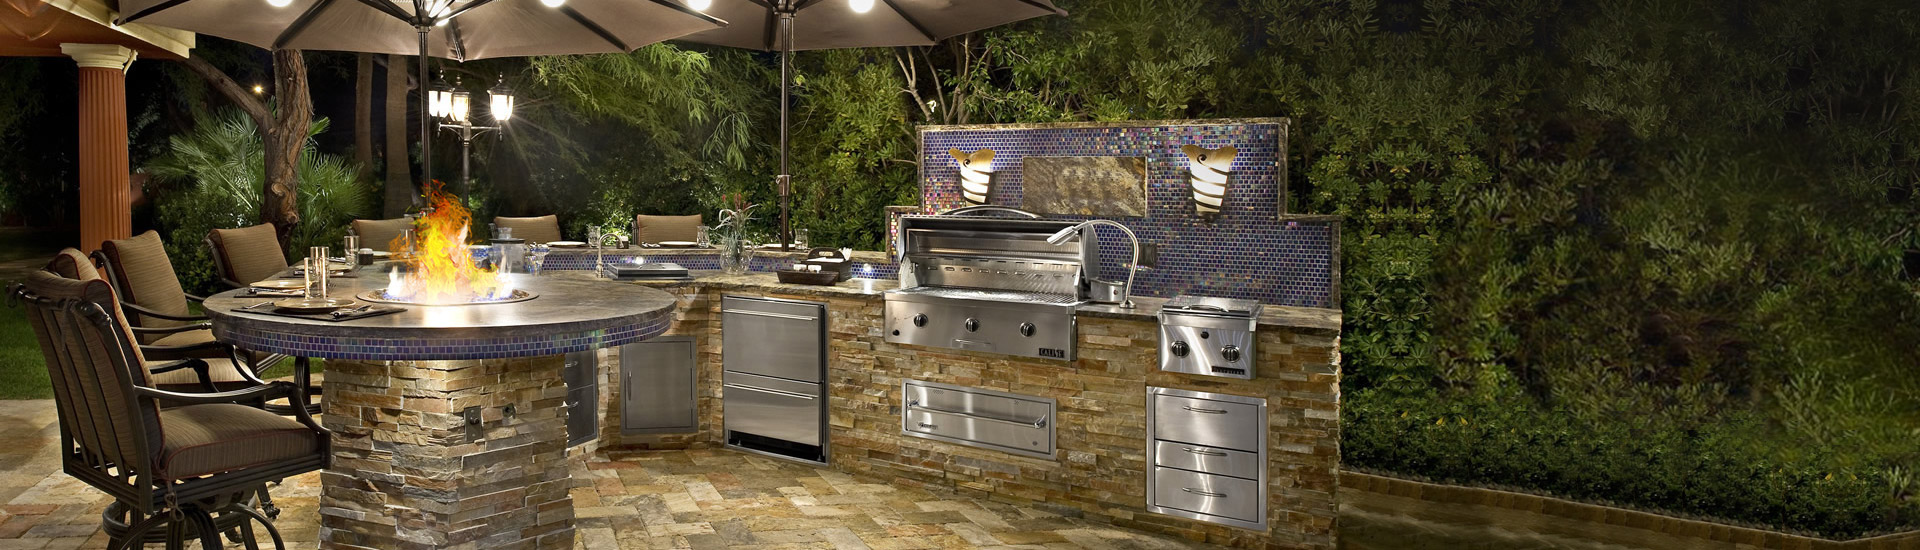 Outdoor kitchens living spaces newport ave landscaping for Ready made outdoor kitchen